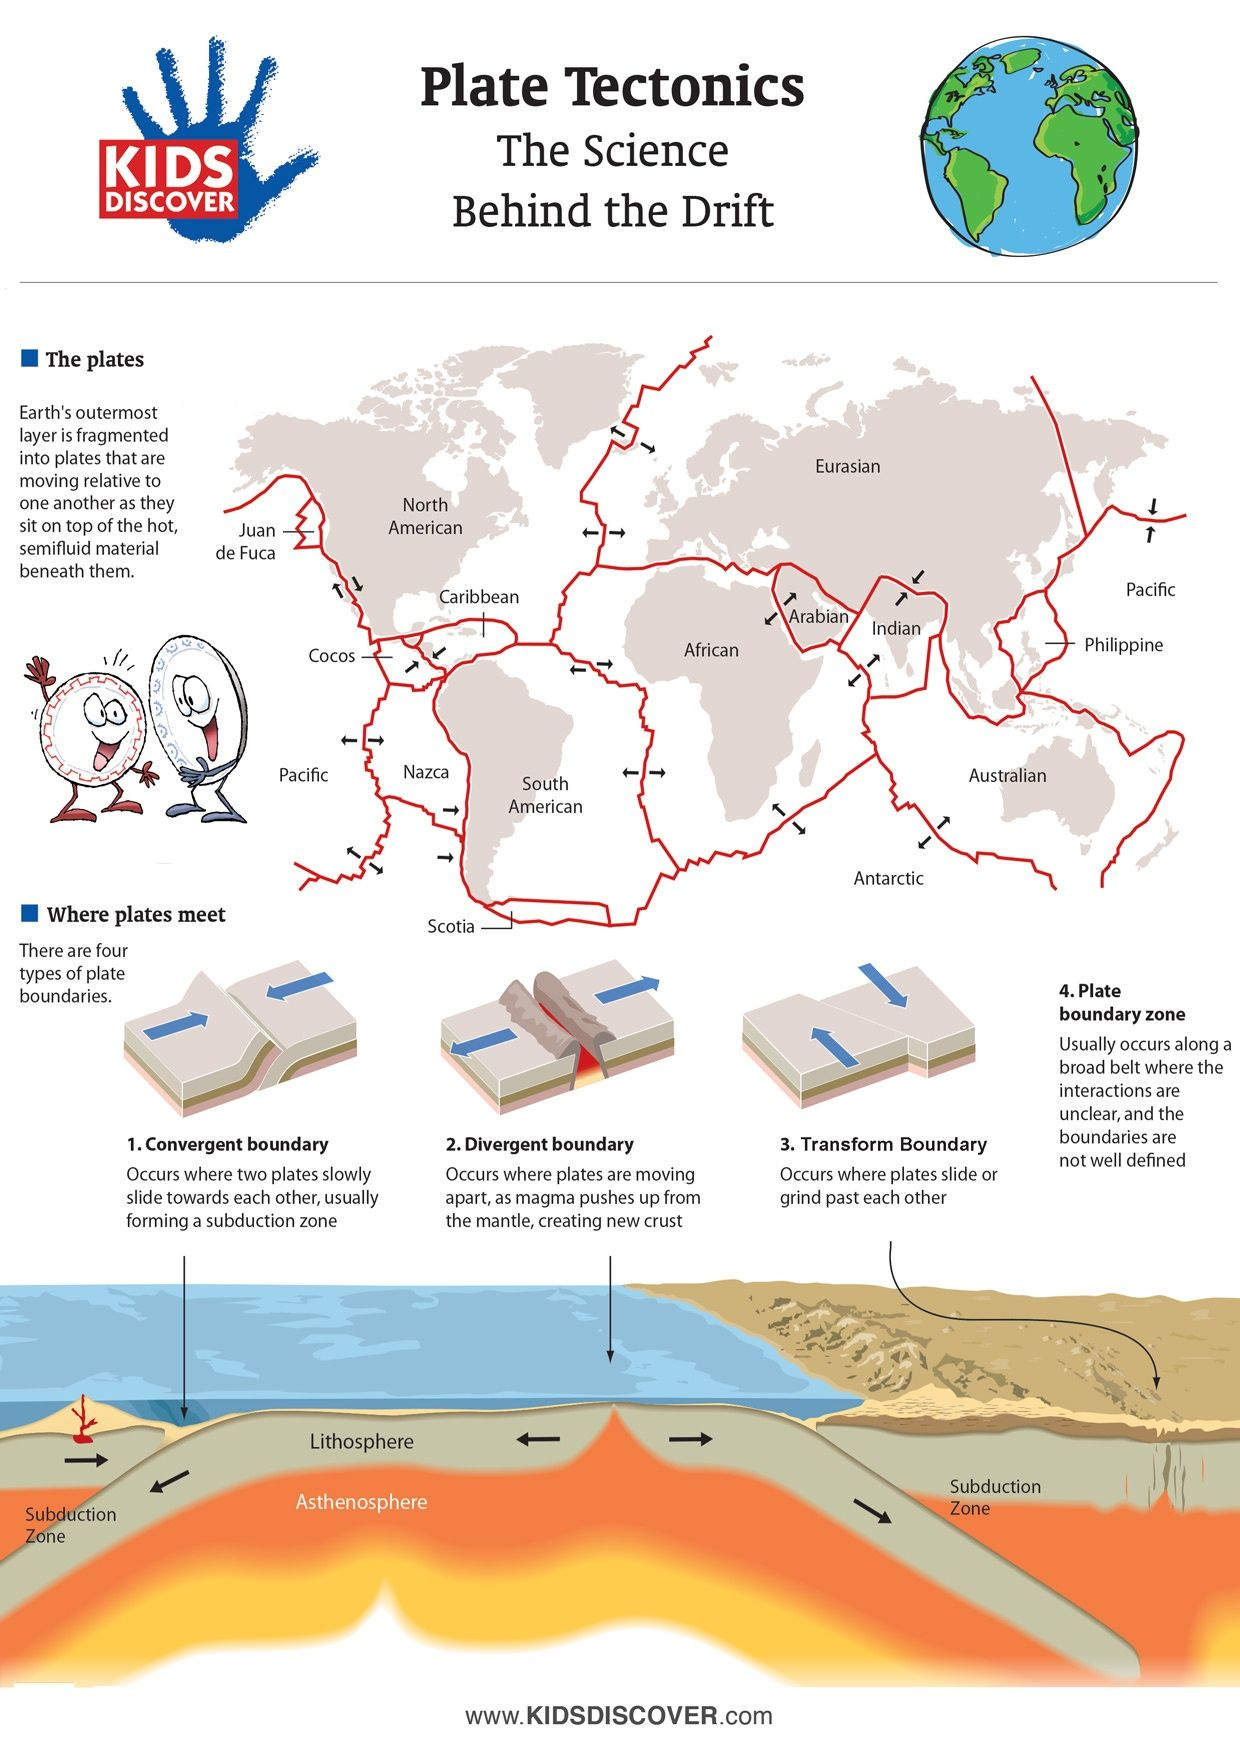 Constructive Plate Boundaries Plate Boundaries Gcse Science Tectonic Plate Boundaries